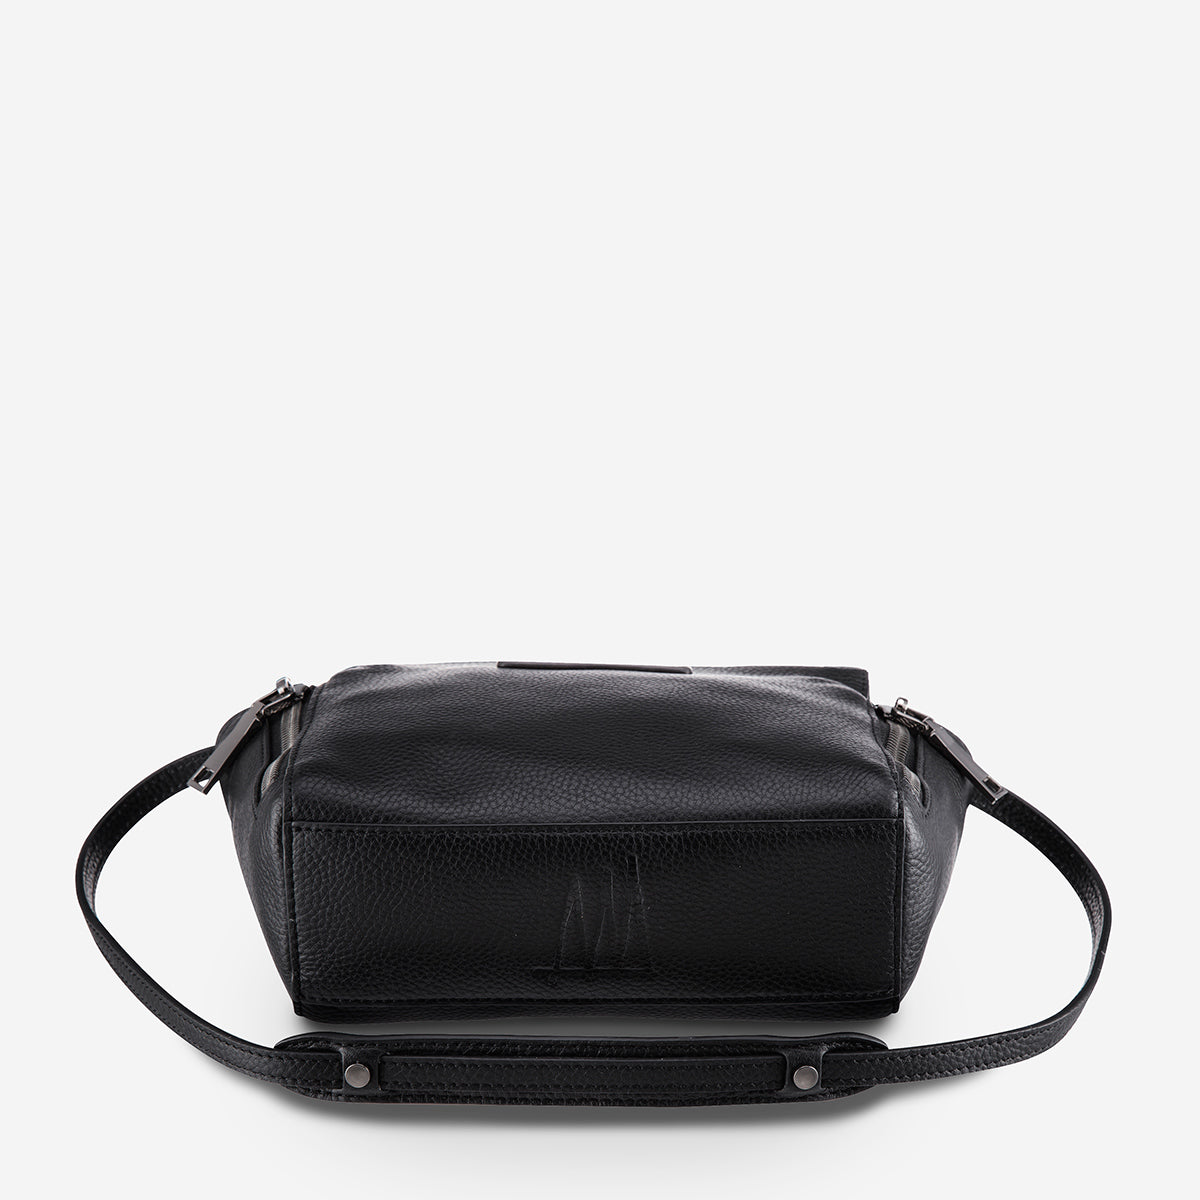 Status Anxiety The Ascendants Leather Bag - Black Pebble